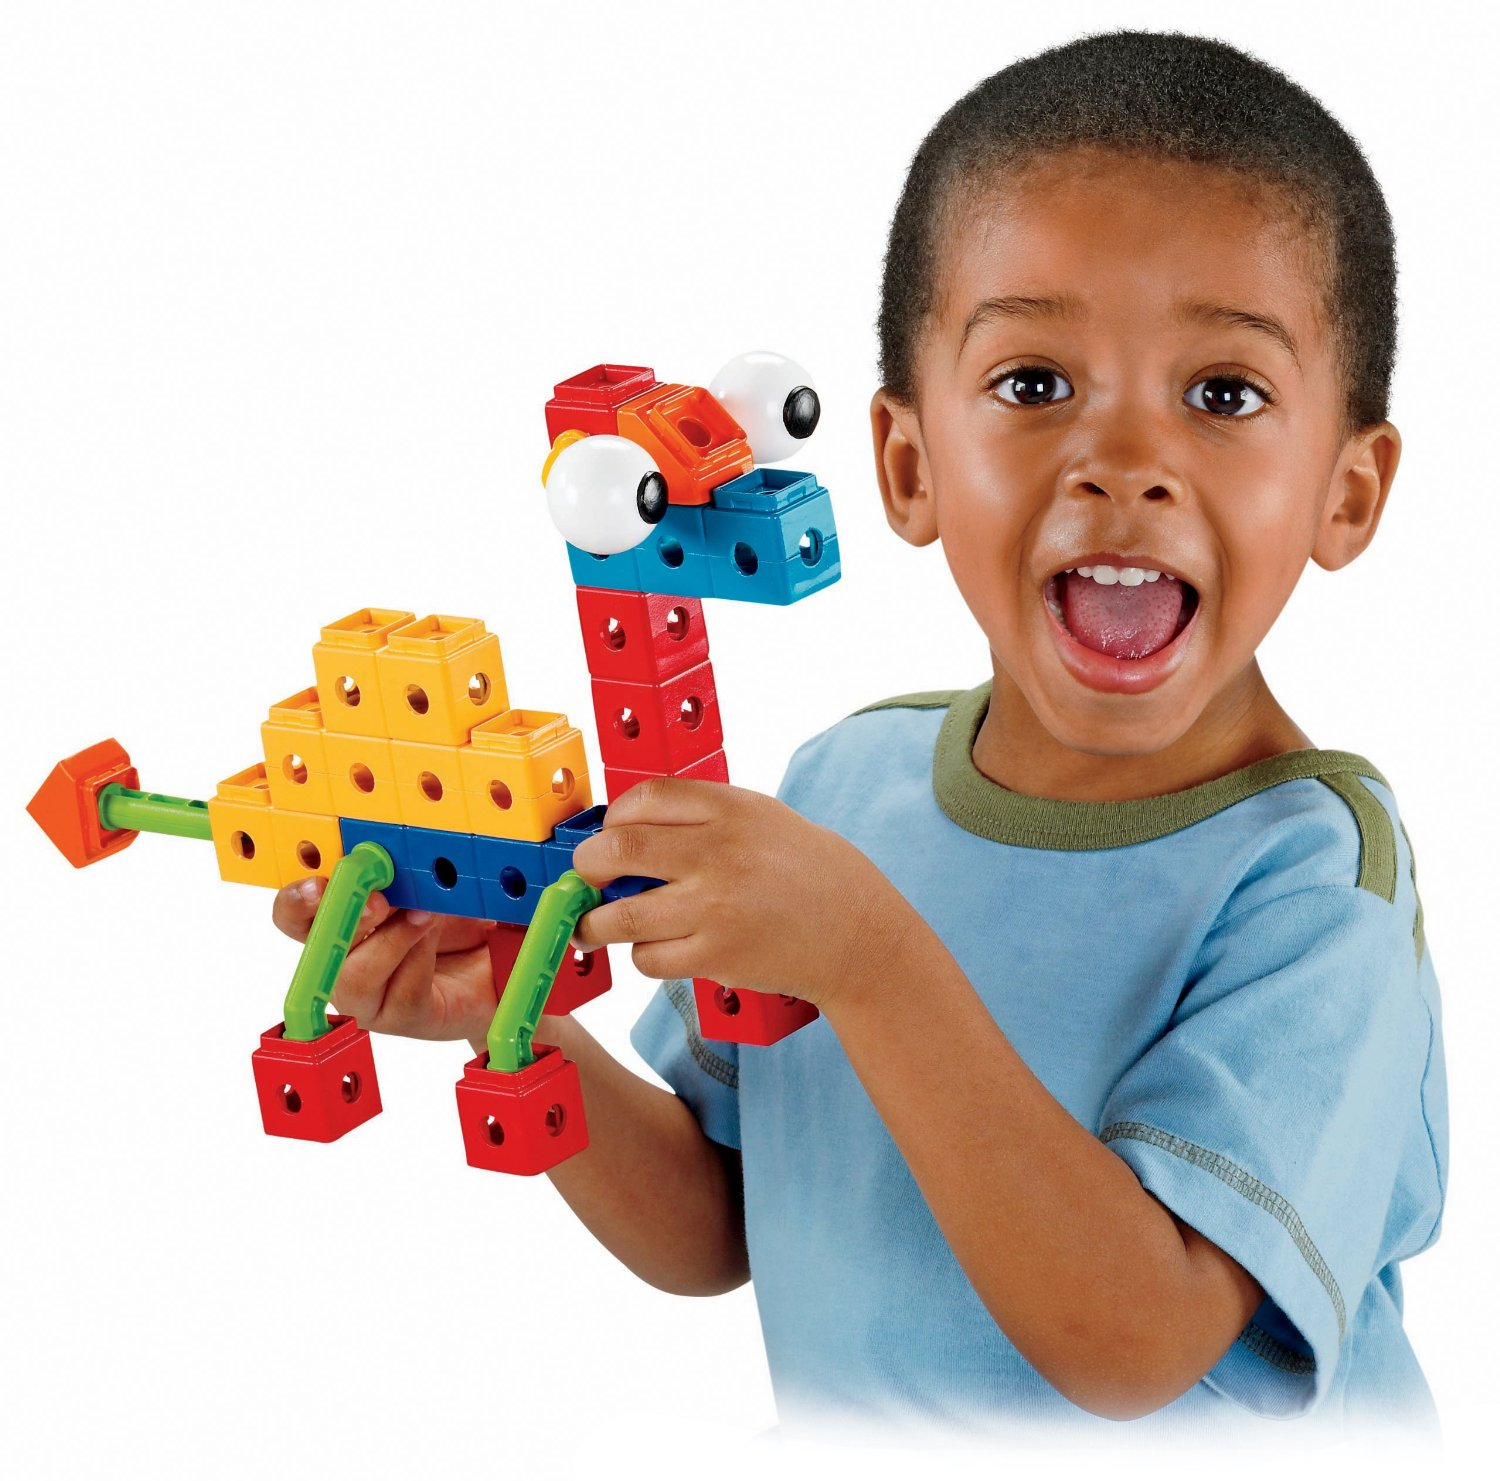 Best Building Toys For Boys : Of the best construction toys for kids